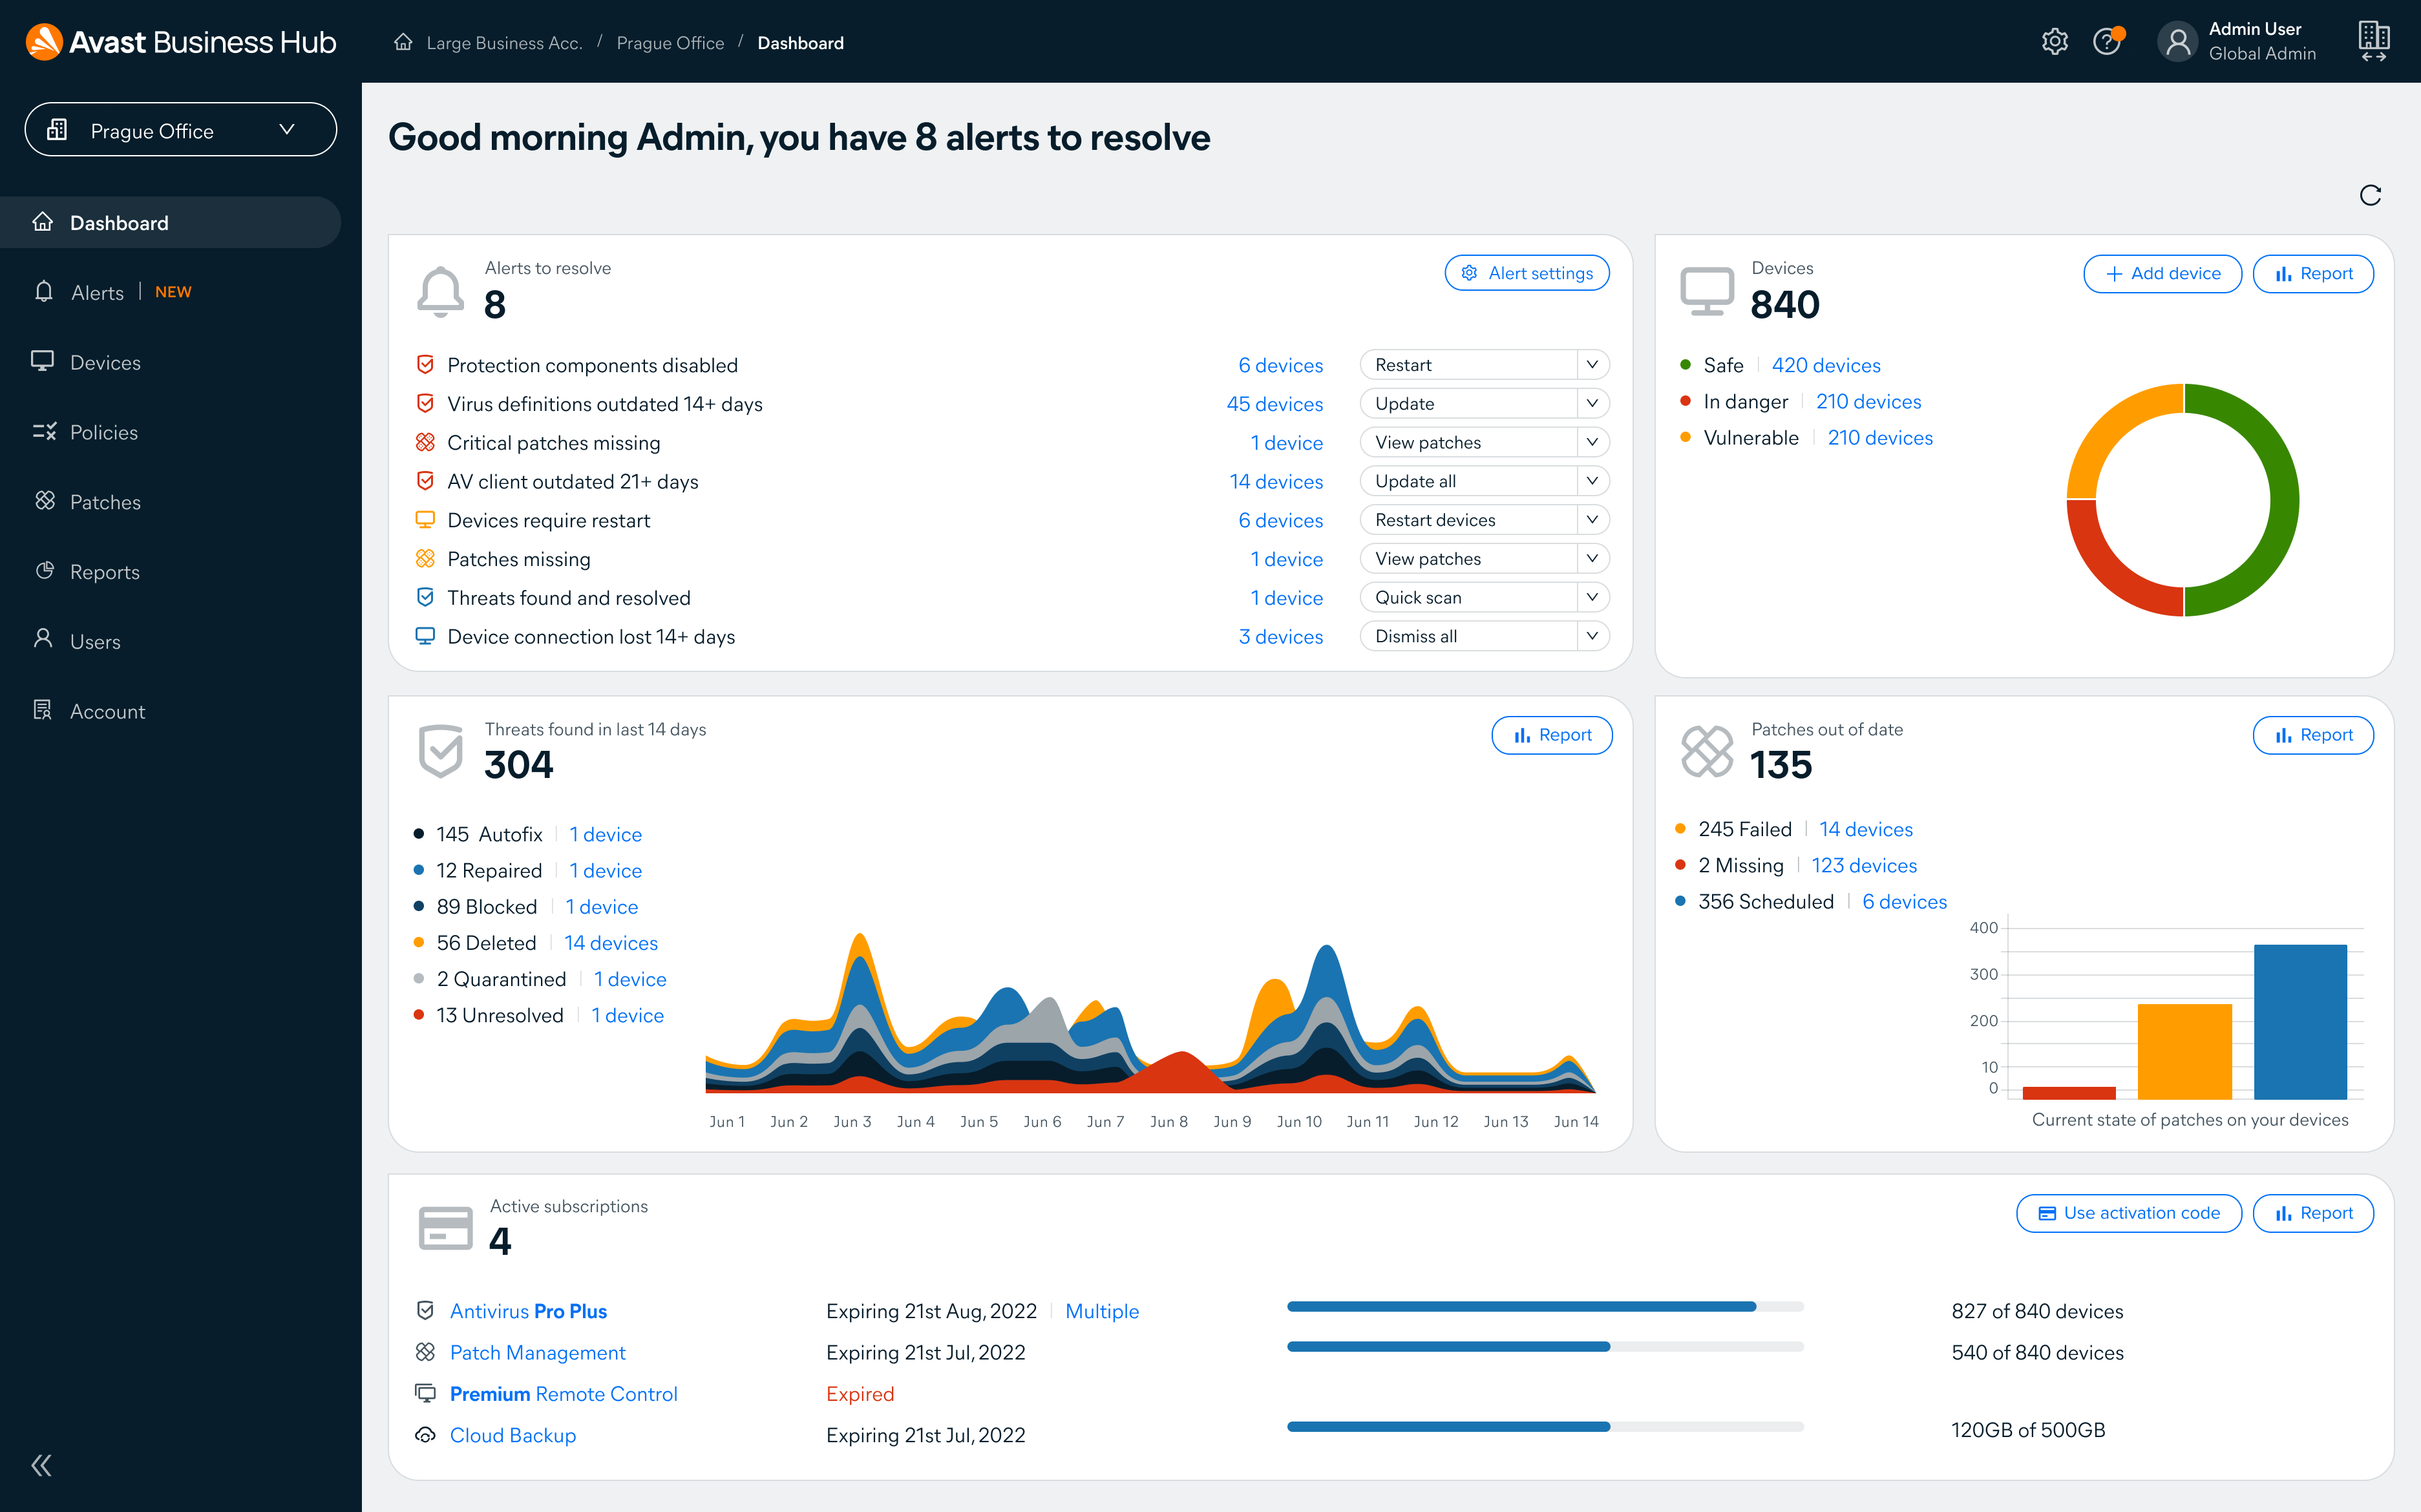 Avast Business Pro Plus Software - Easily manage all your Avast Business security solutions from one streamlined dashboard